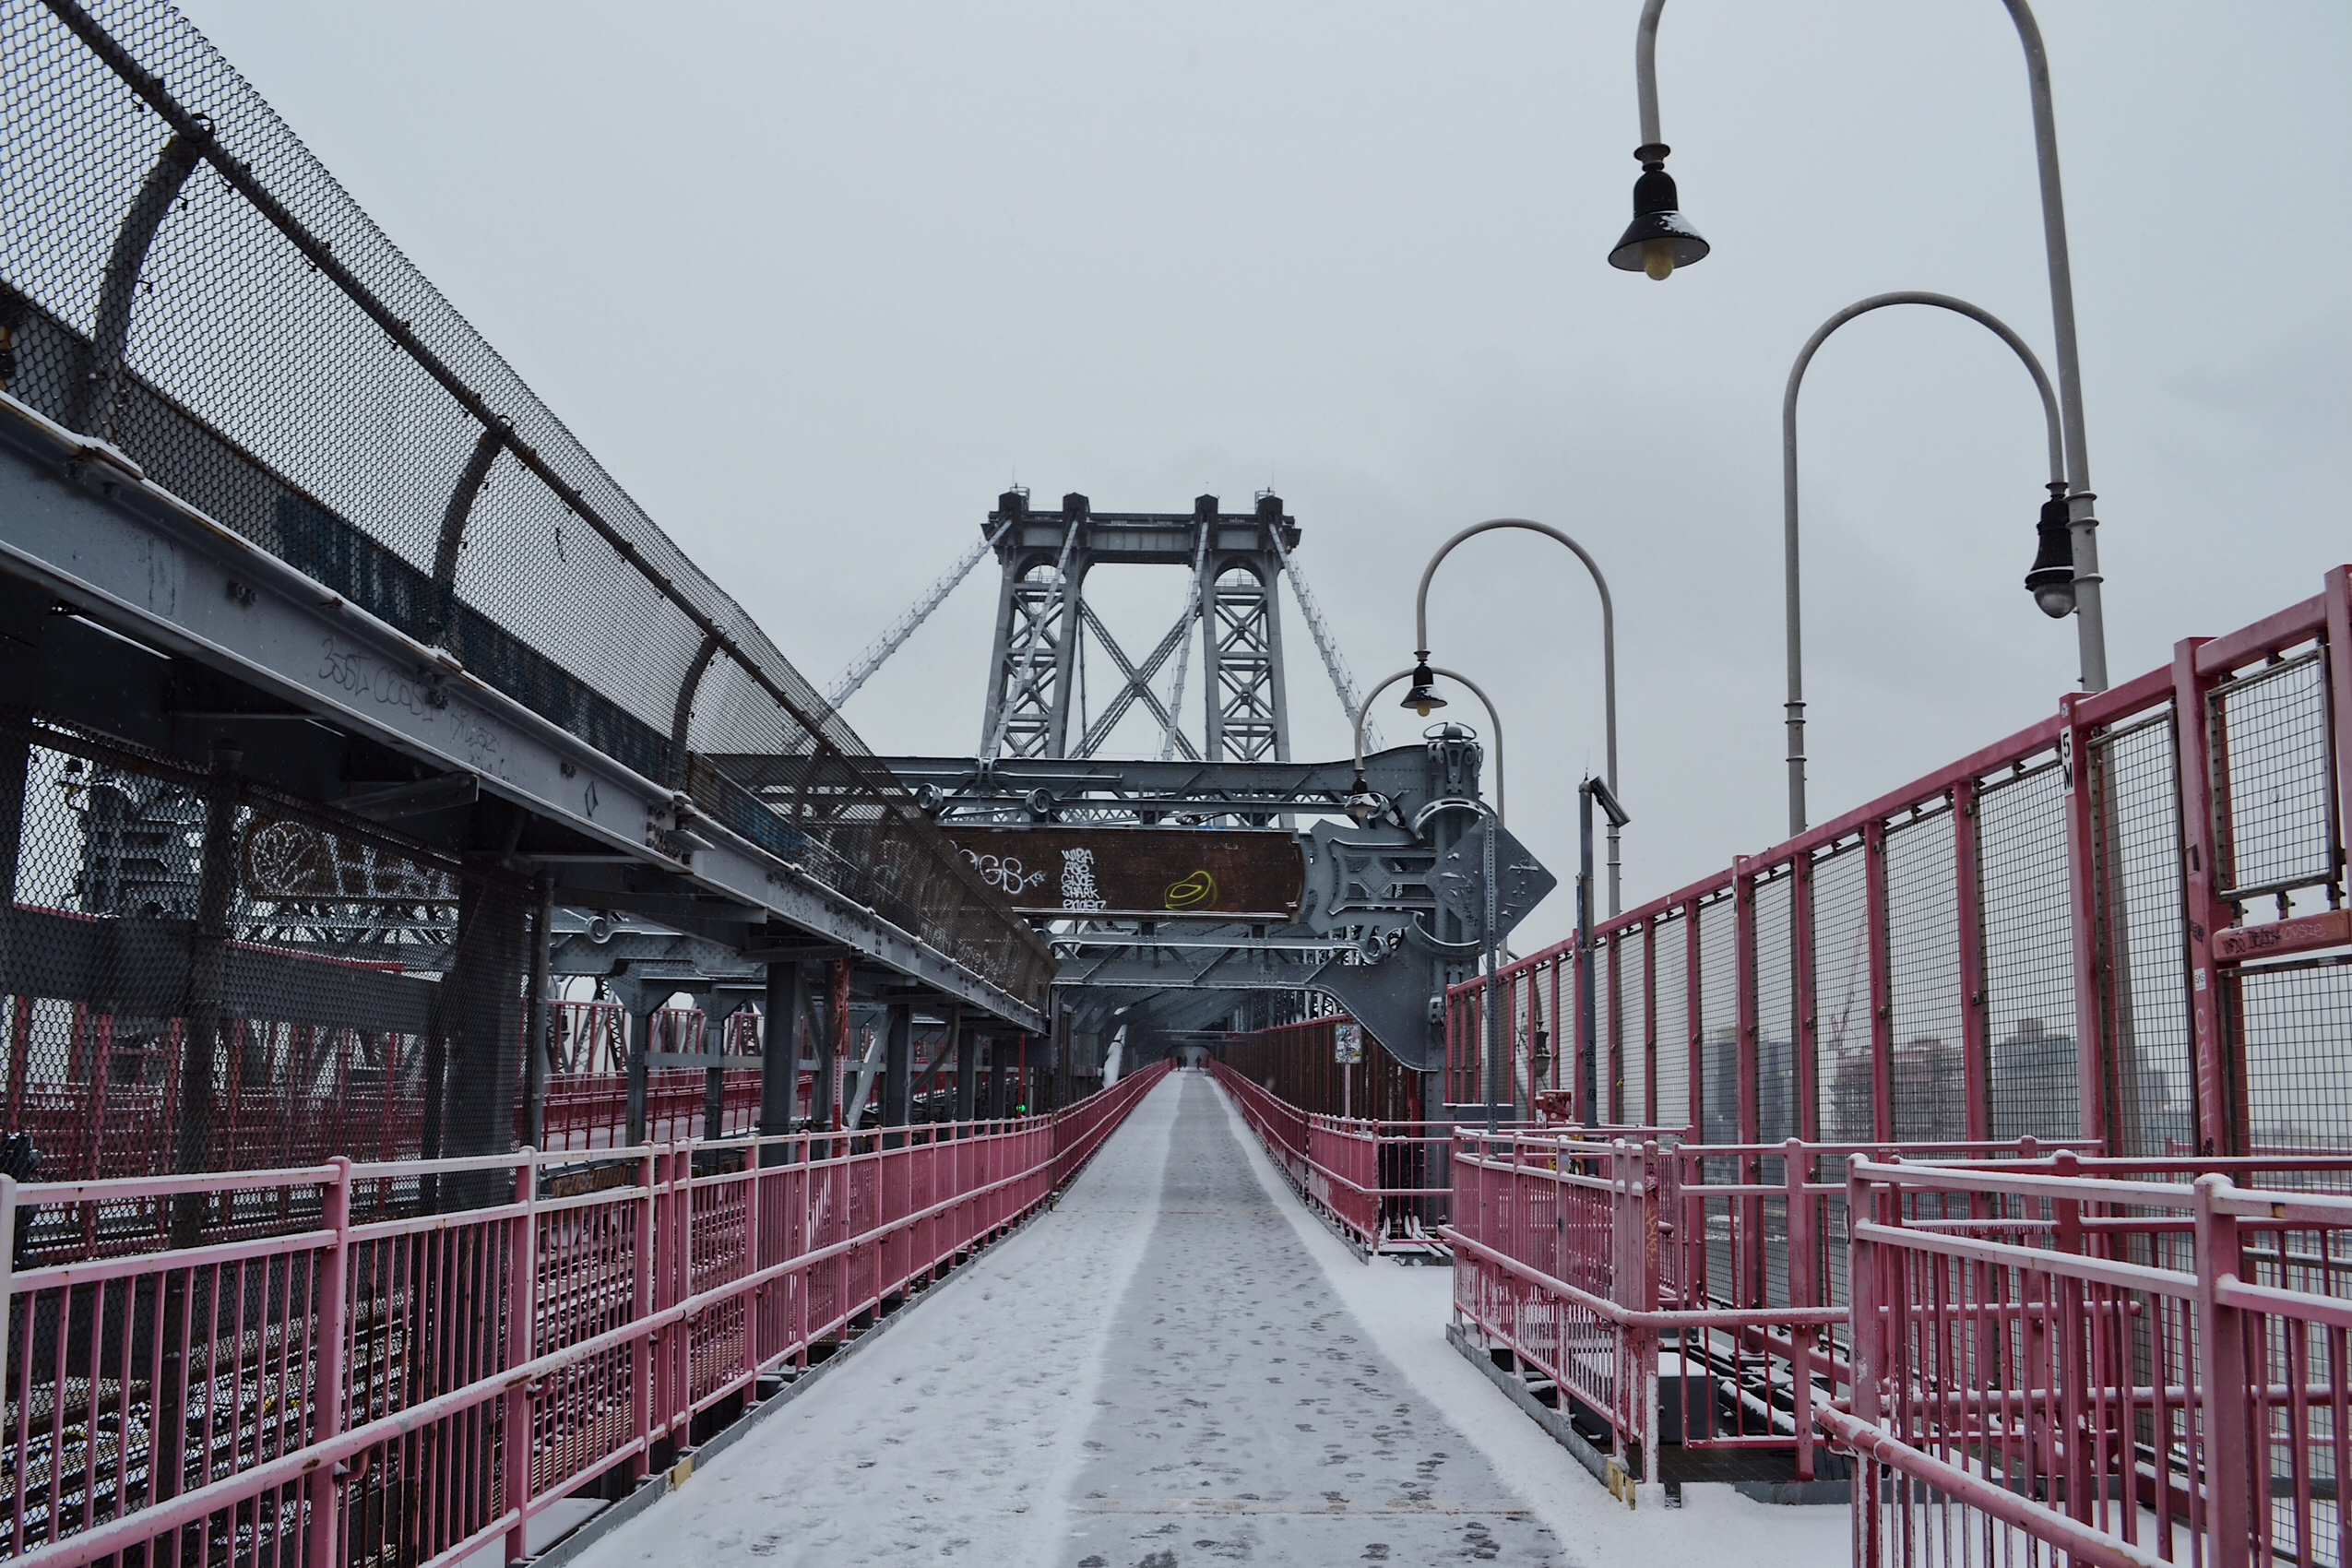 Image of Williamsburg Bridge in New York